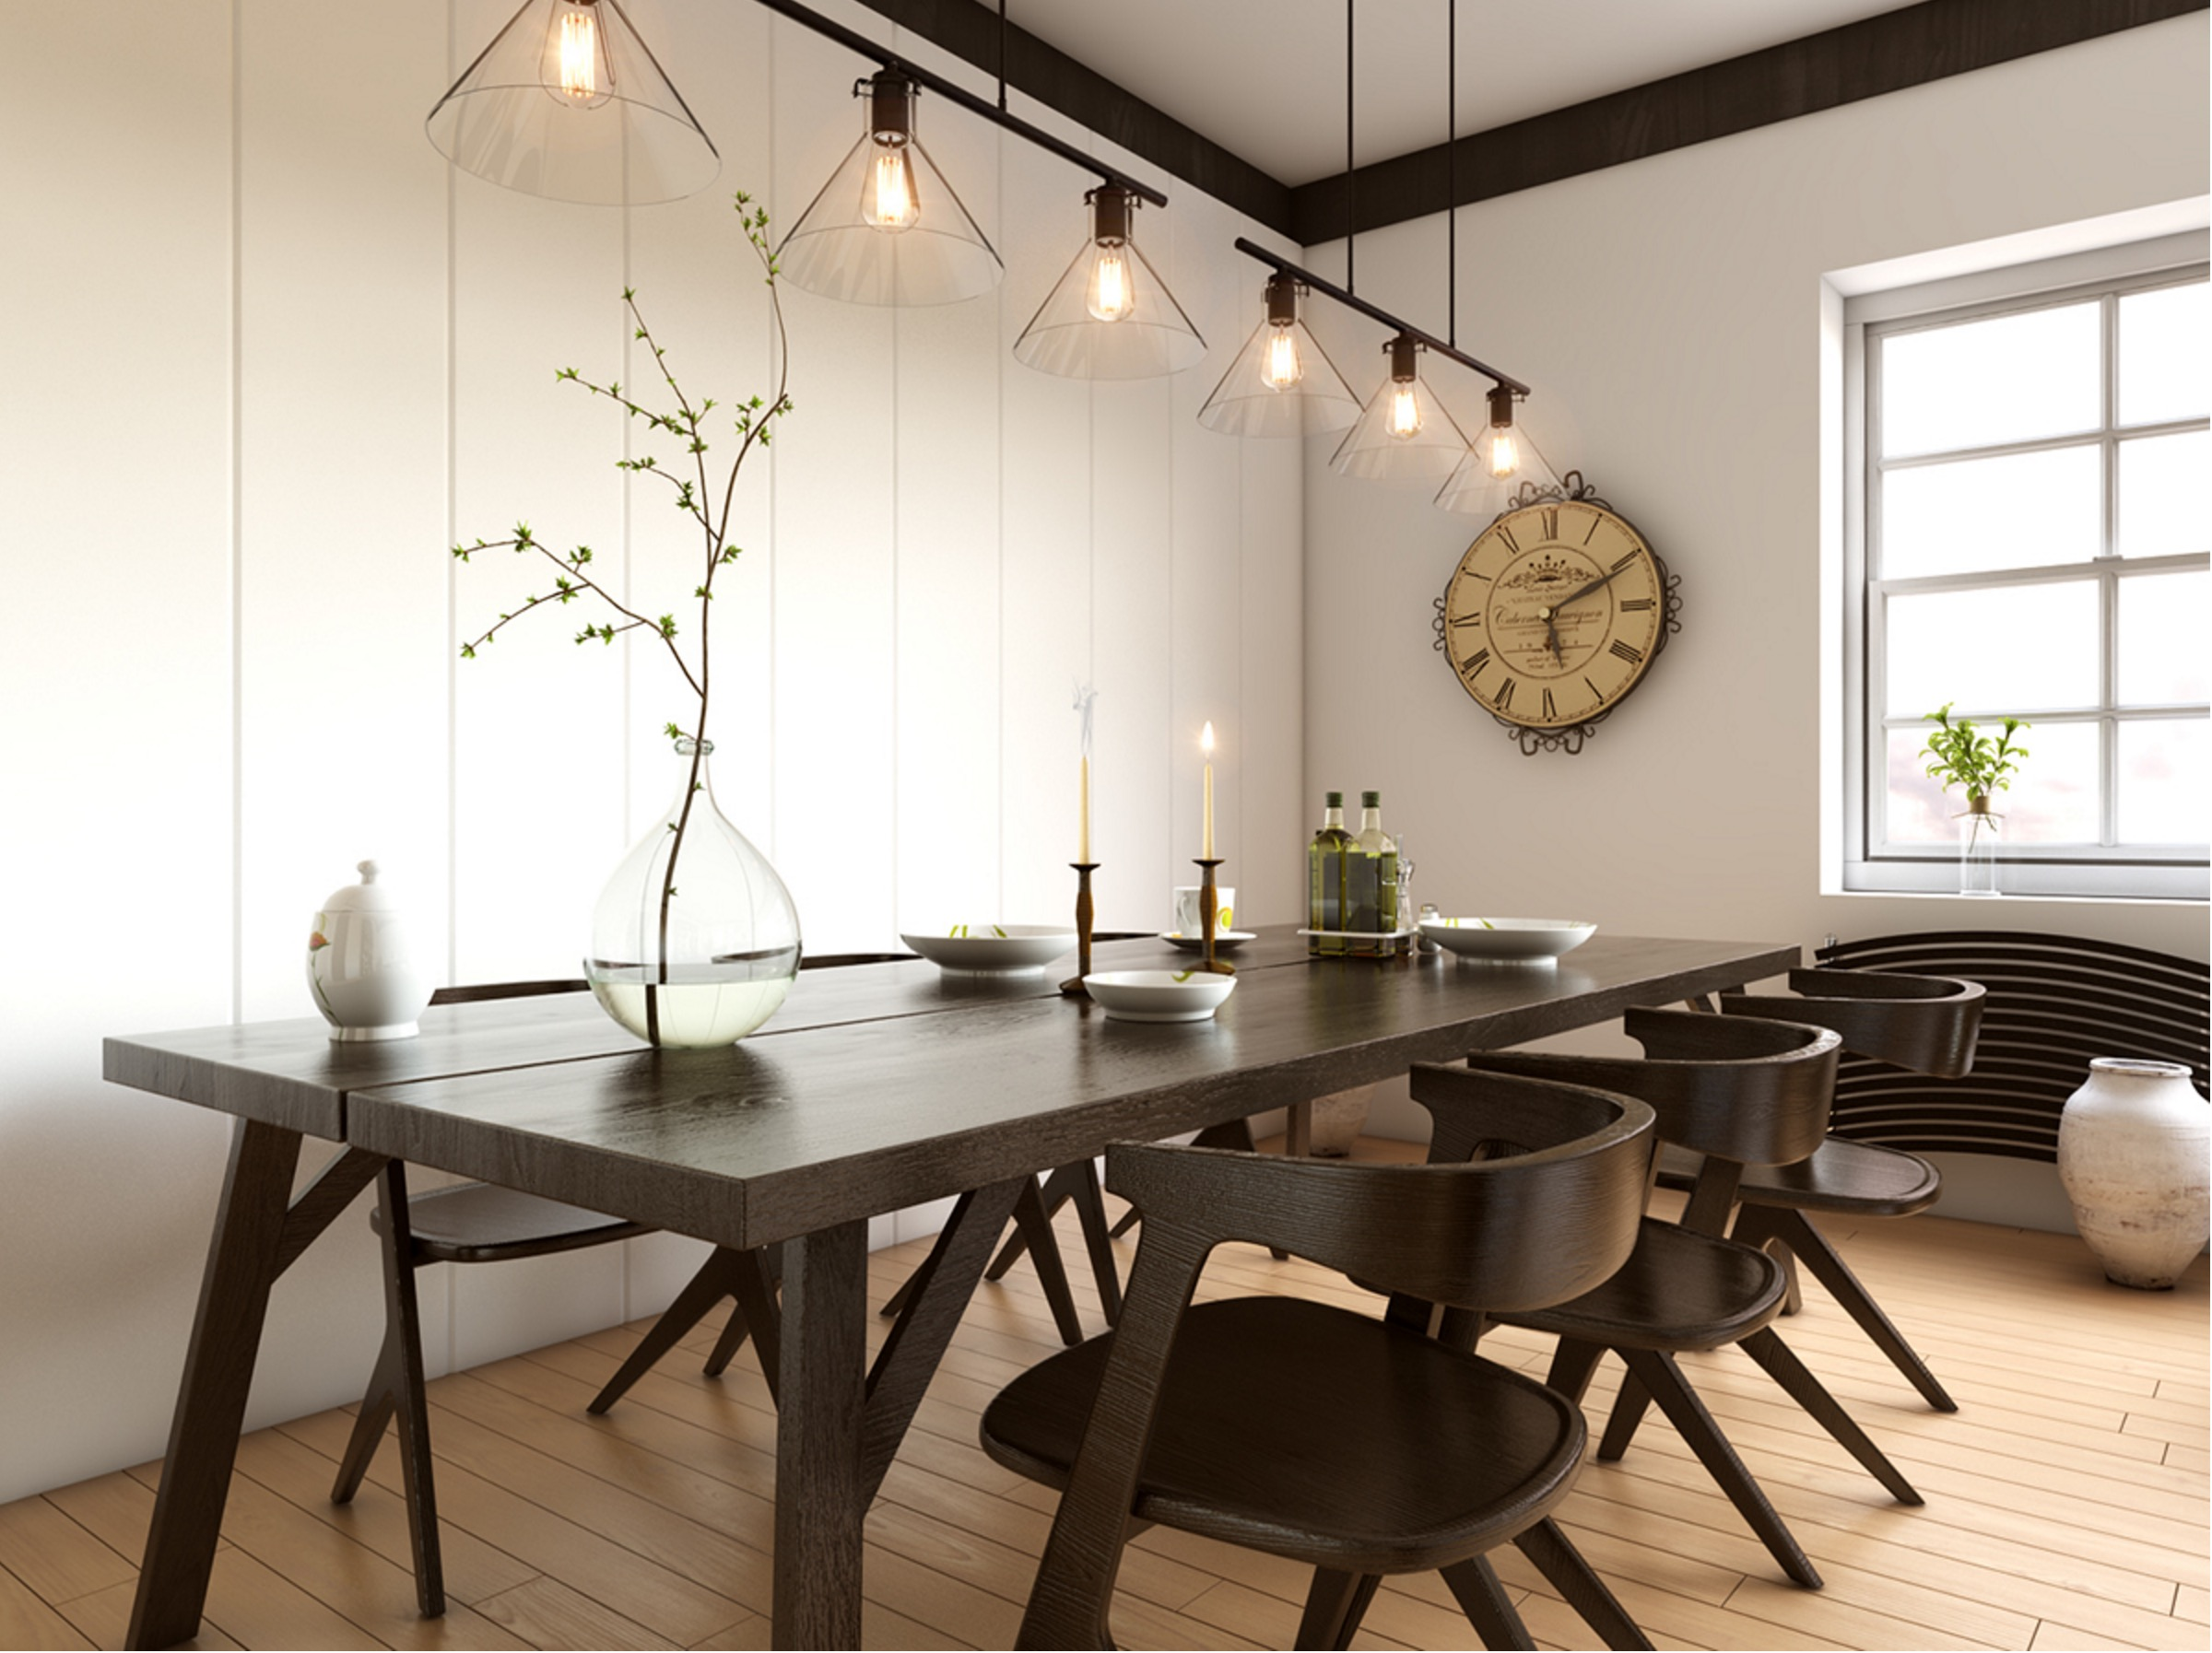 25 Inspirational Ideas For White And Wood Dining Rooms